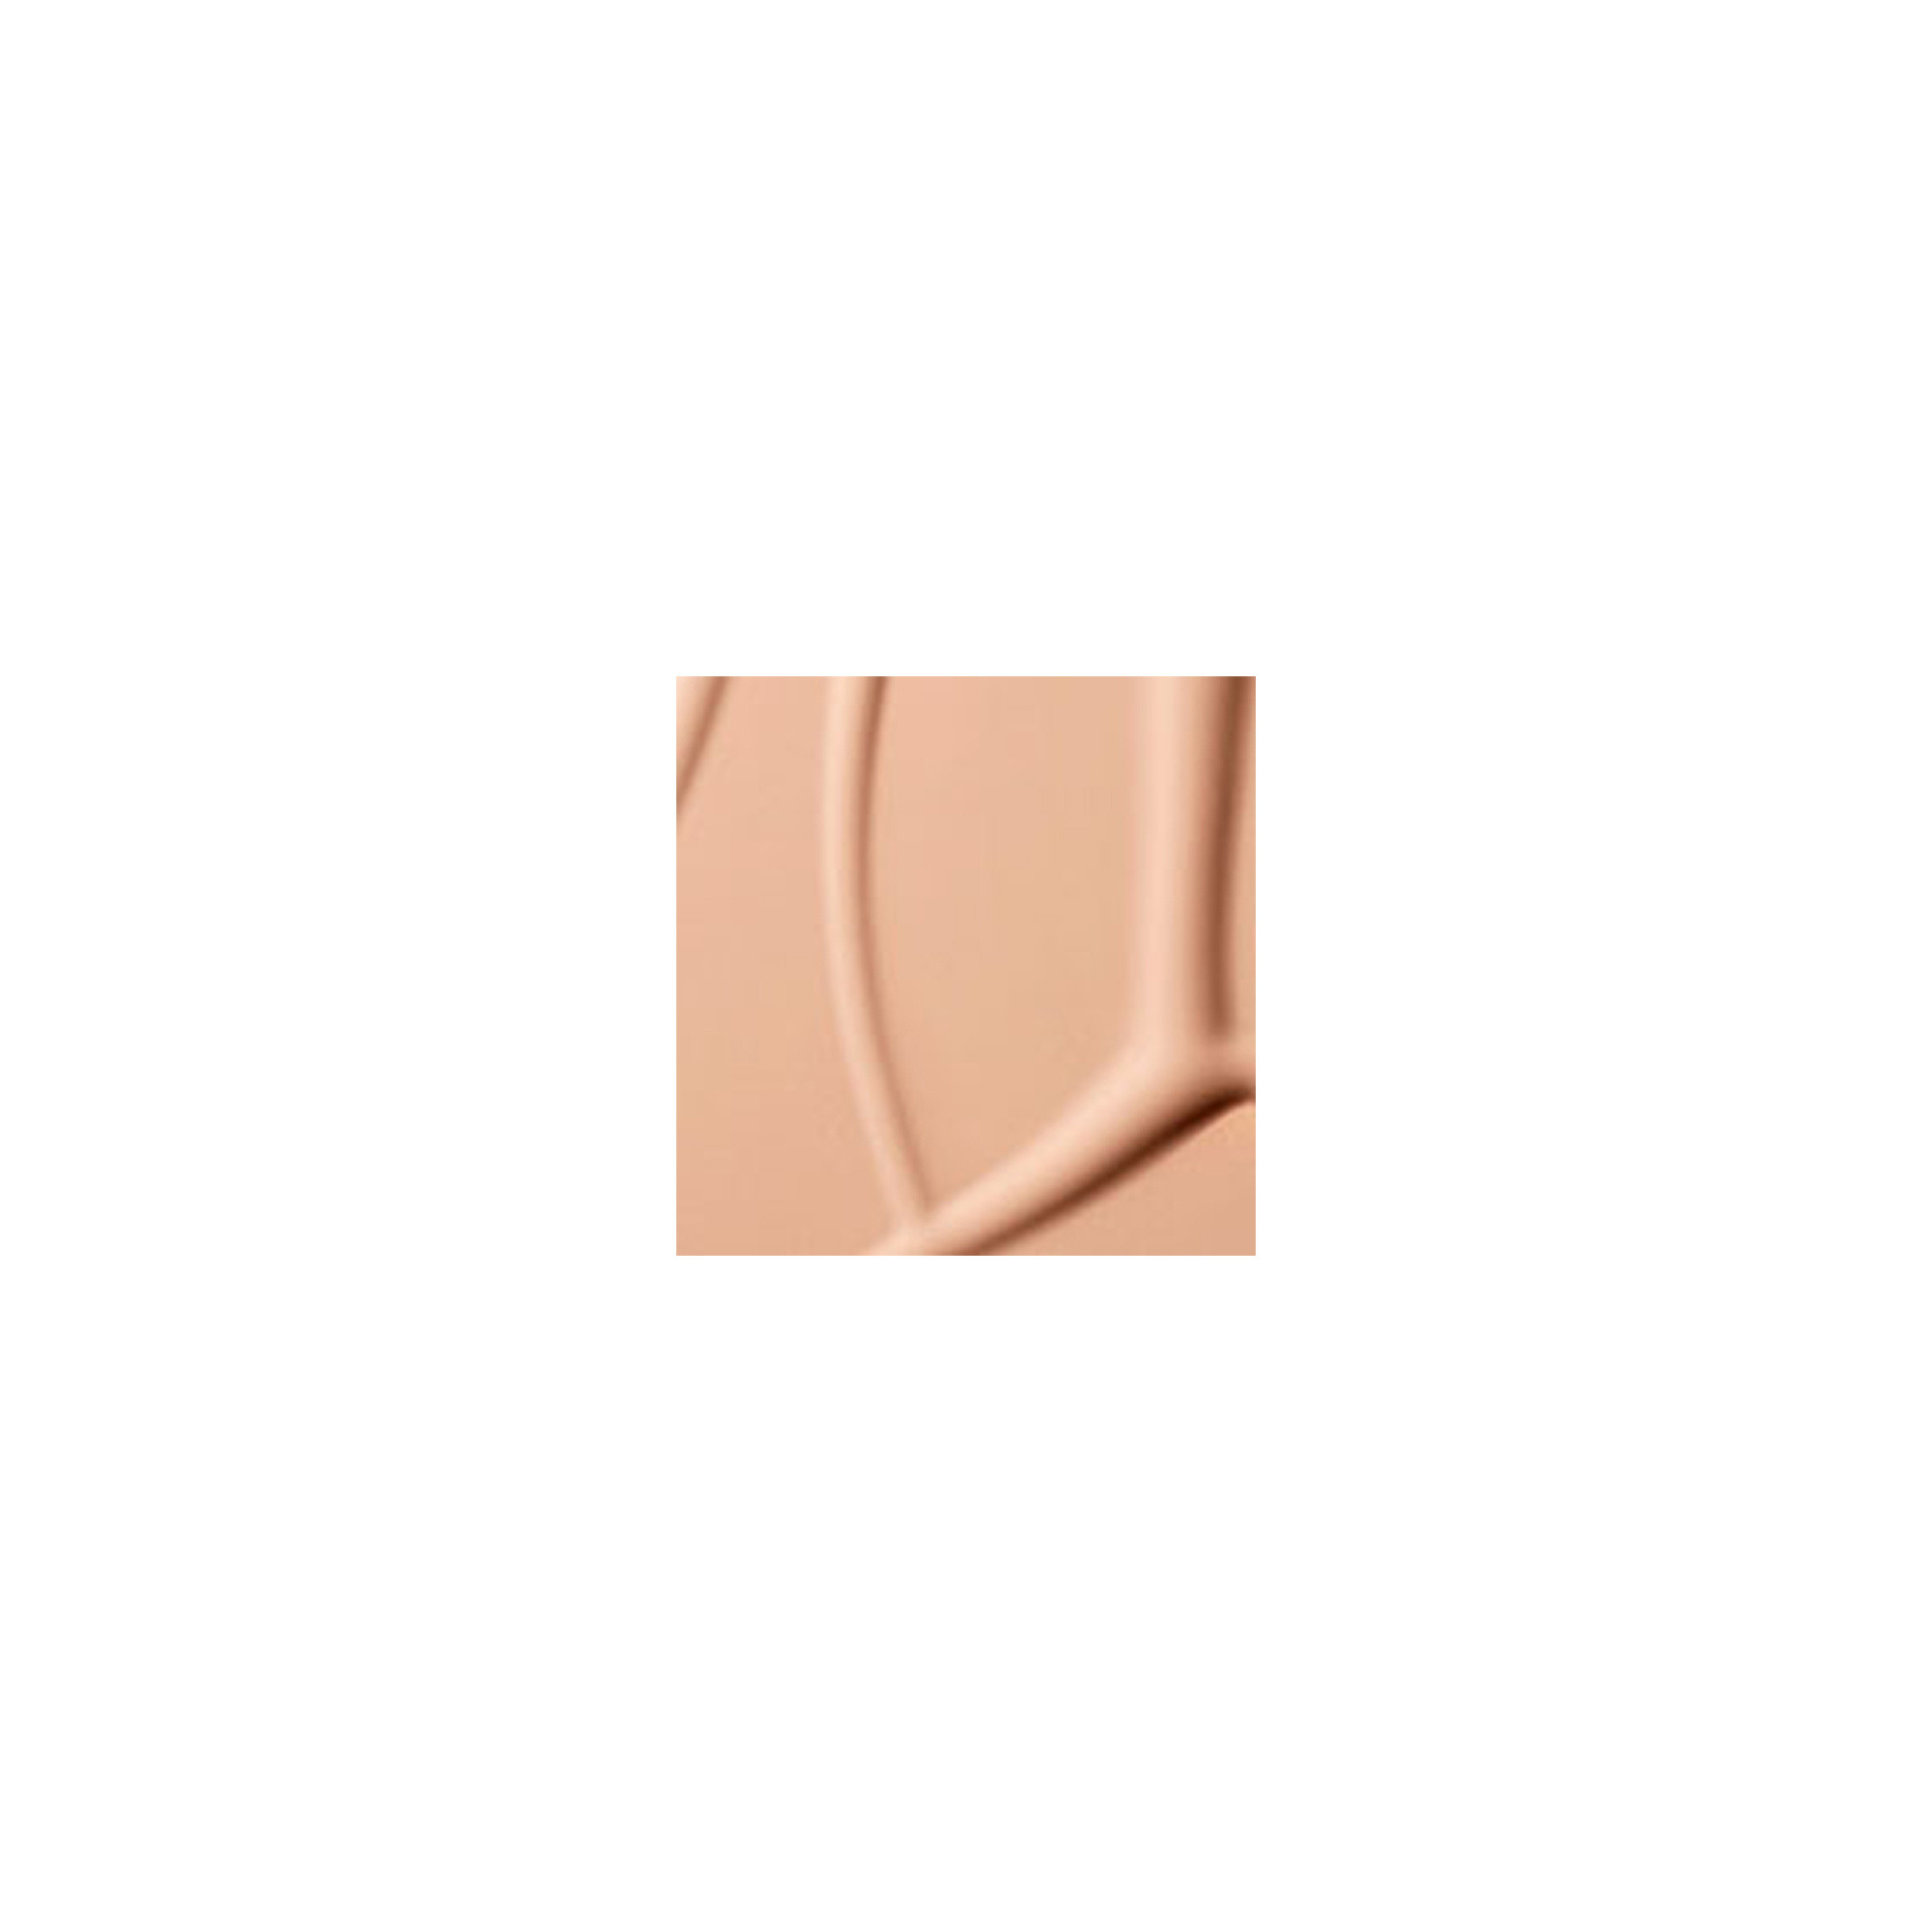 Studio Fix Fluid Foundation Spf15 - NW18, NW18, large image number 1